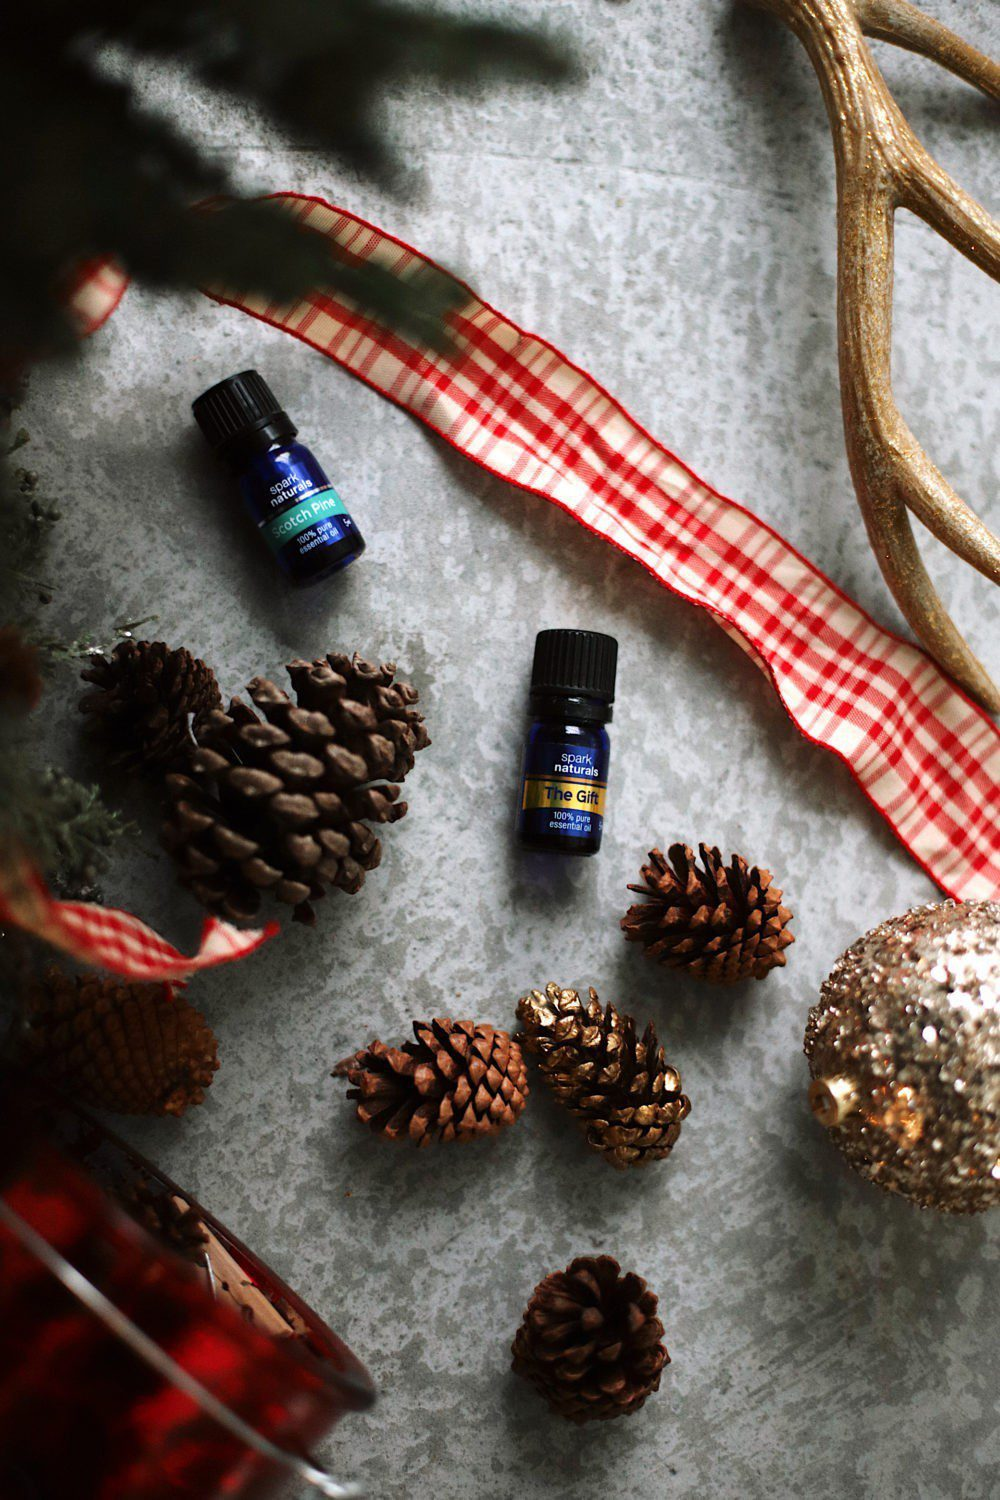 12 Days of Christmas Essential Oils   12 Christmas Essential Oils to Fight Stress by popular Florida life and style blog, Fresh Mommy: image of Spark Naturals Scotch Pine and The Gift essential oils.